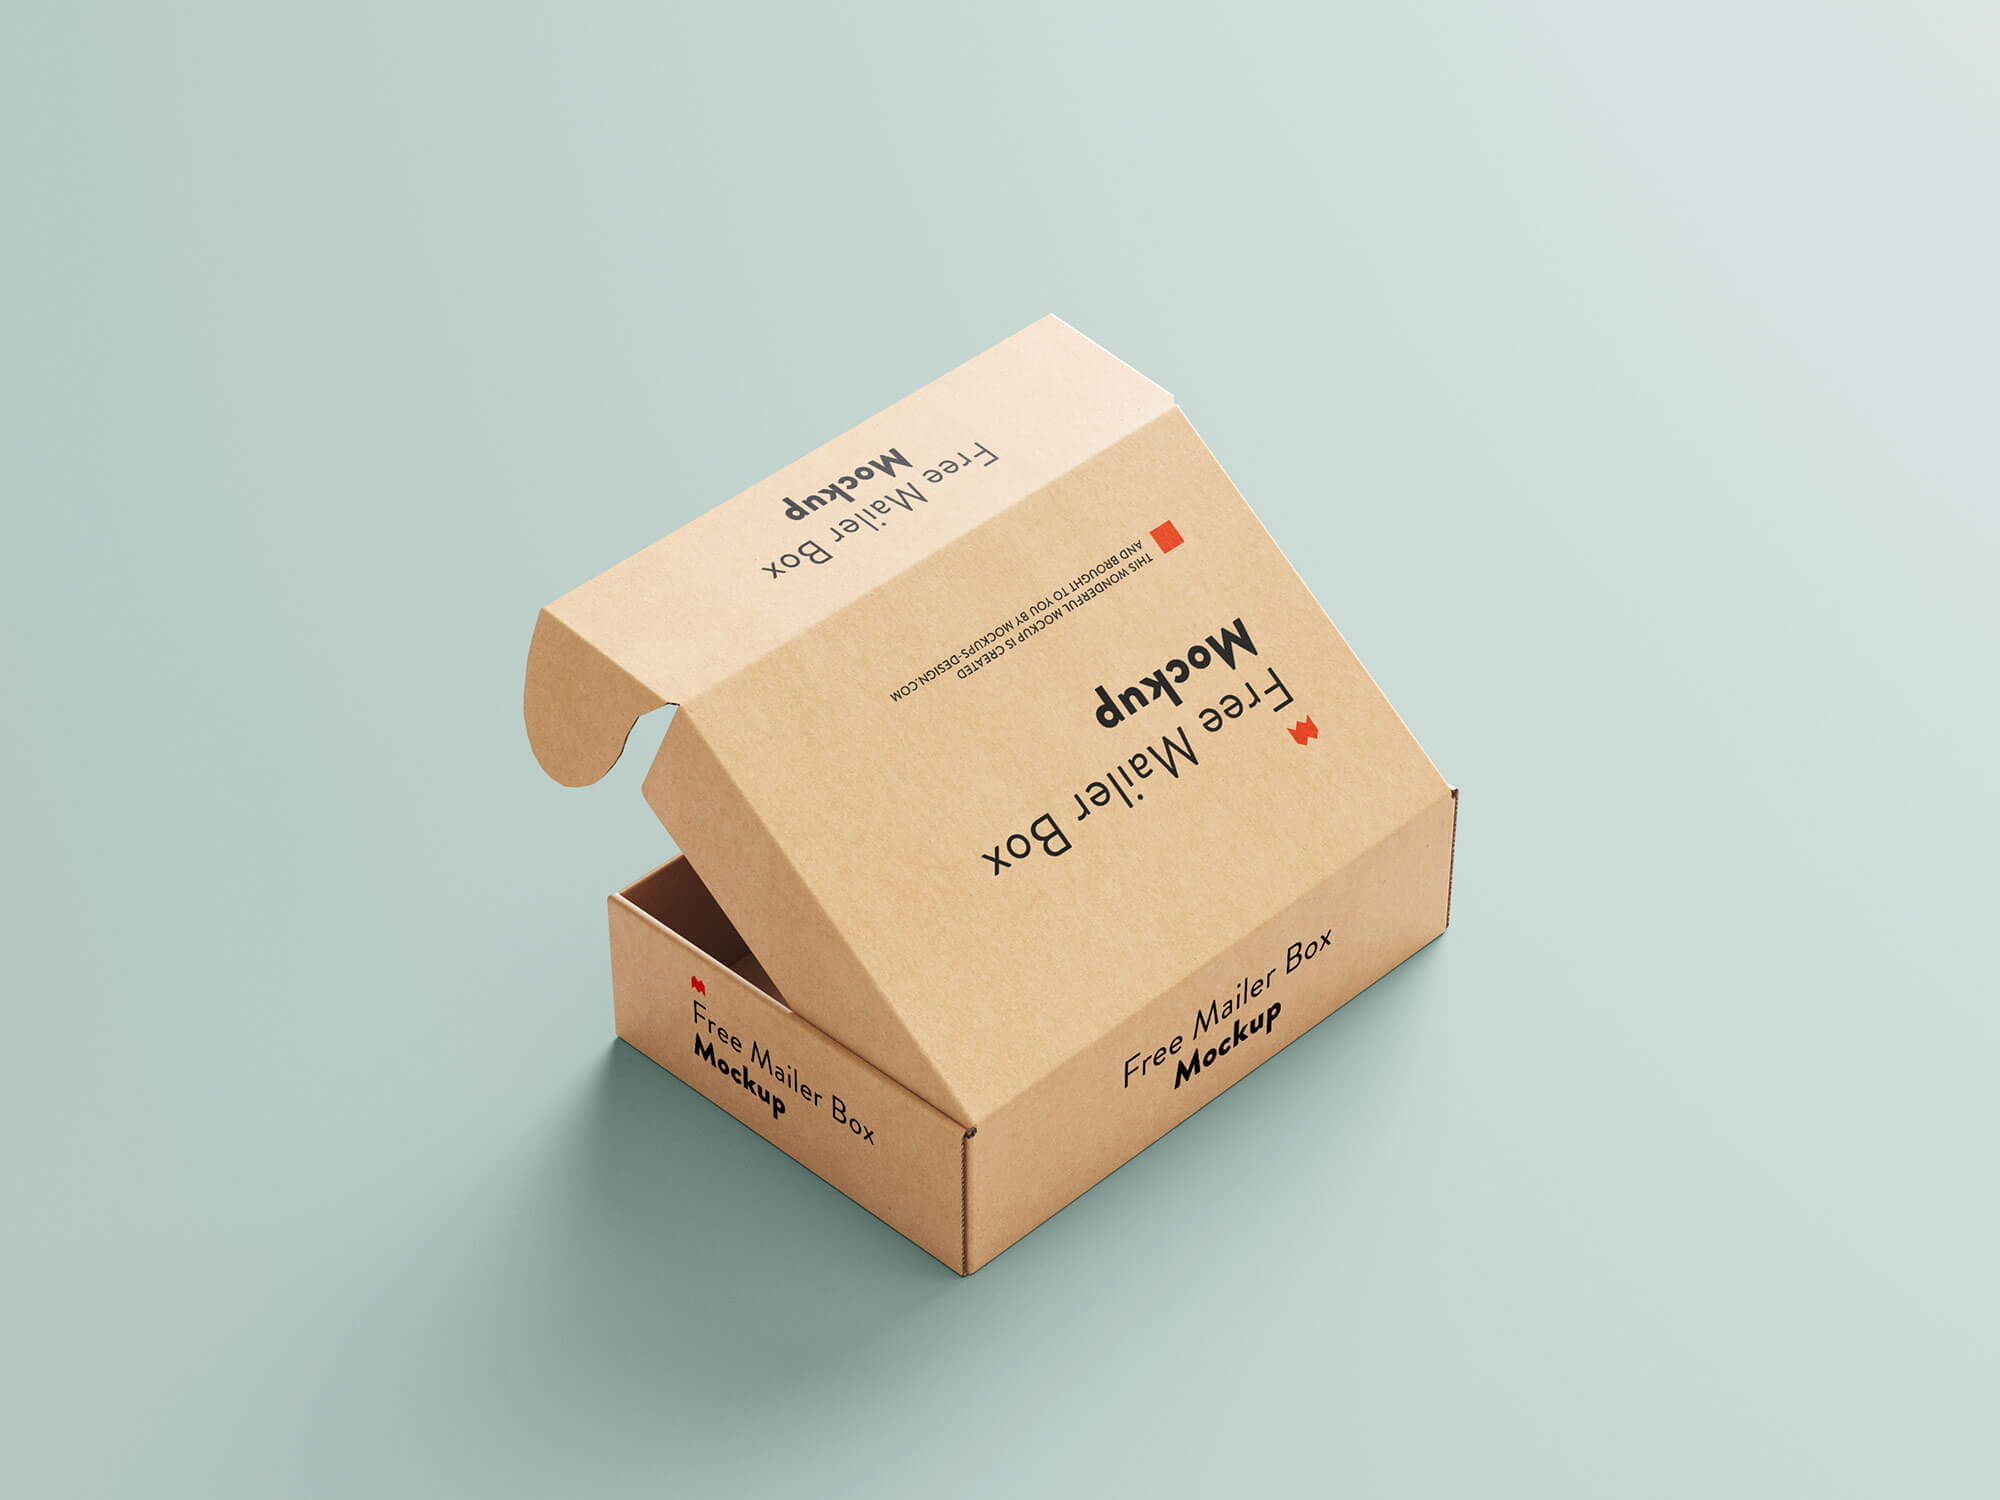 Free Delivery Shipping Mailer Box Mockup PSD Set (1)